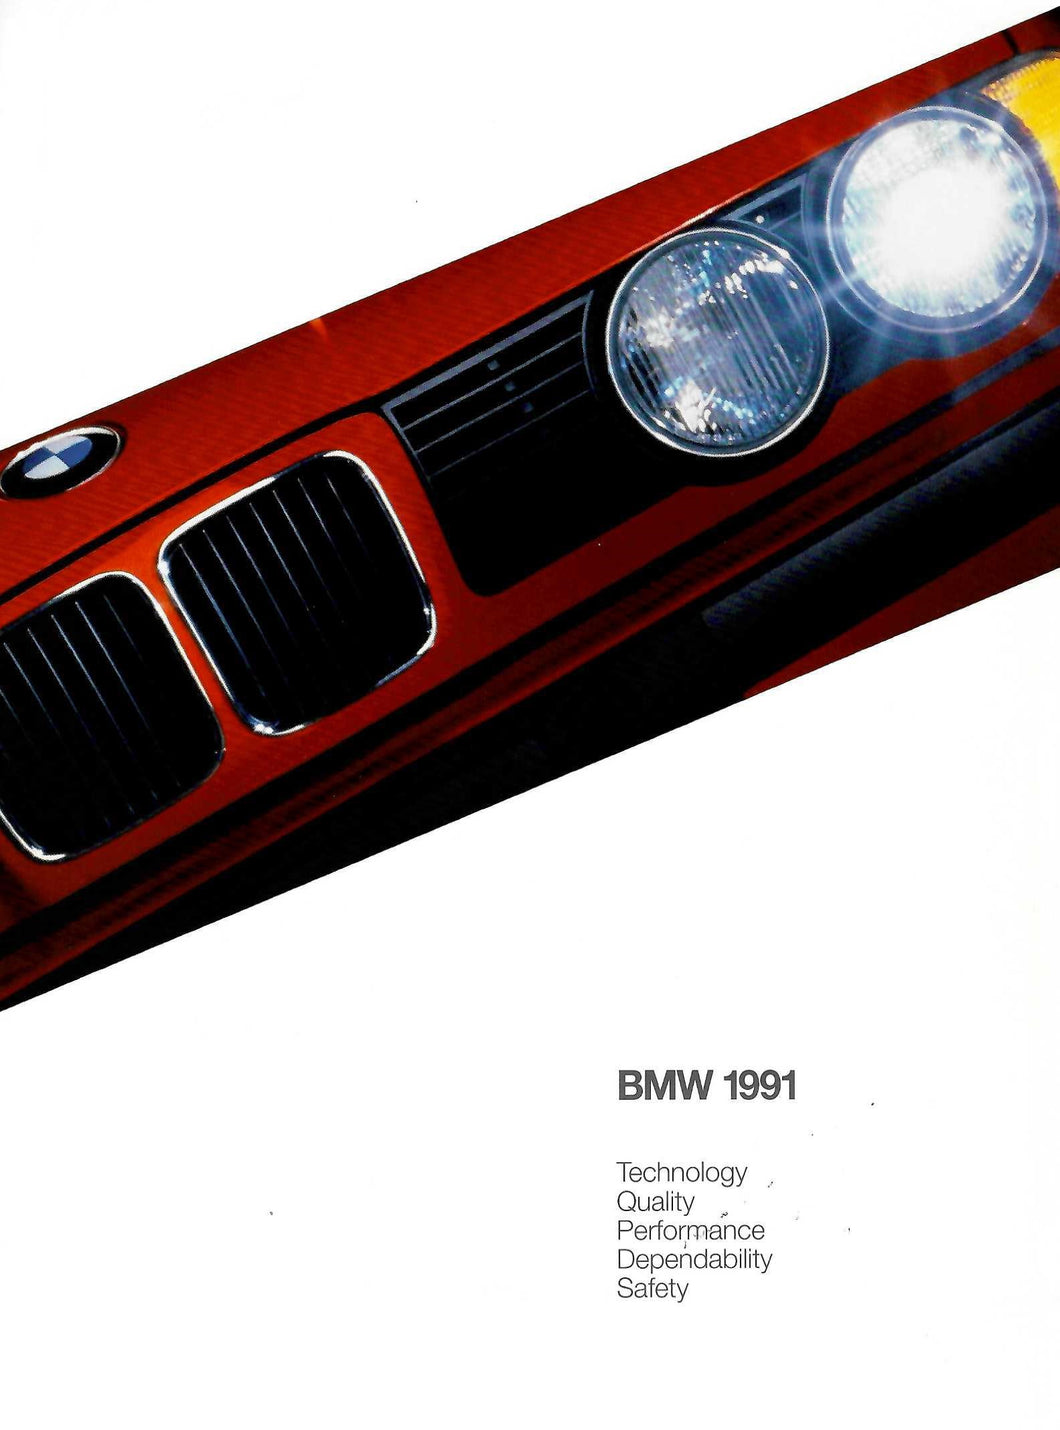 Brochure - BMW 1991 Technology Quality Performance Dependability Safety